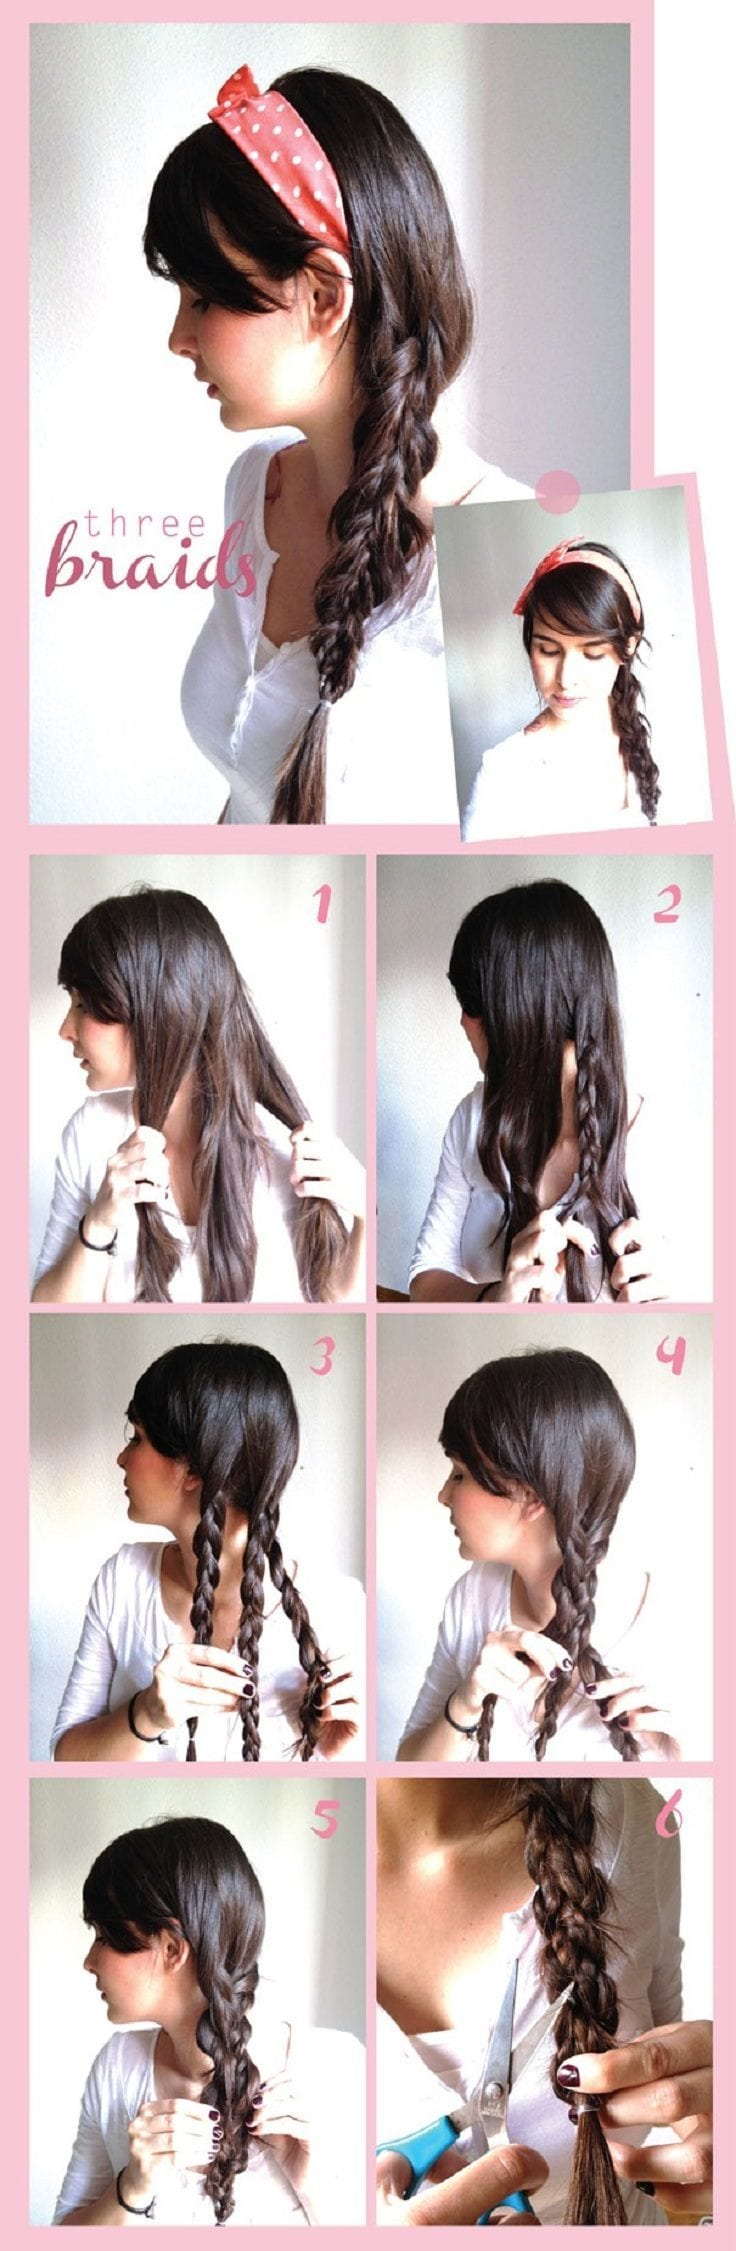 Three Braids Hair Do